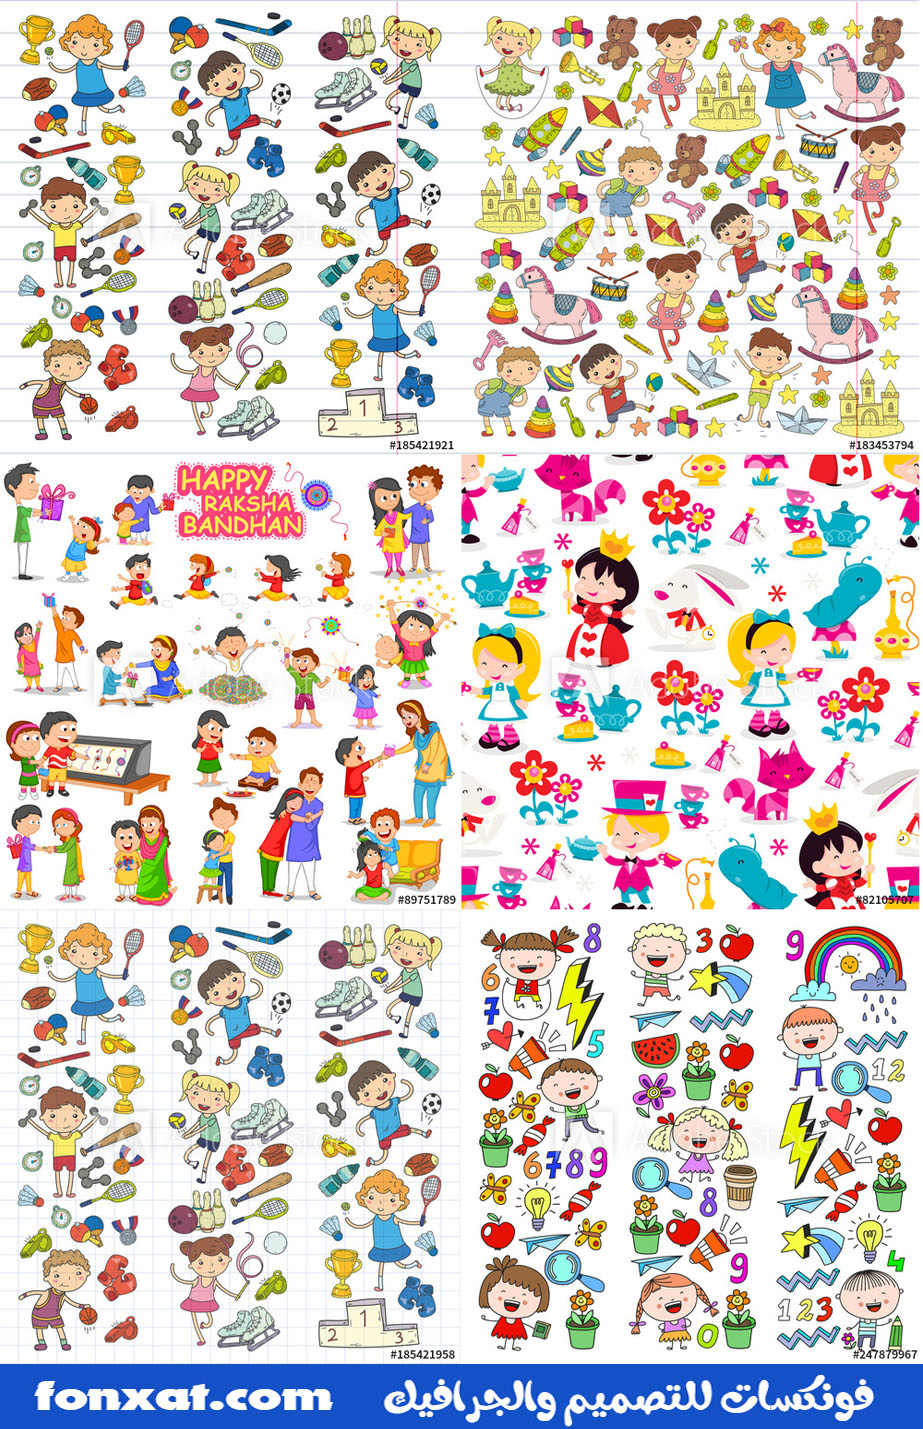 Download the highest quality children's cartoon designs collection, cartoon designs free to download